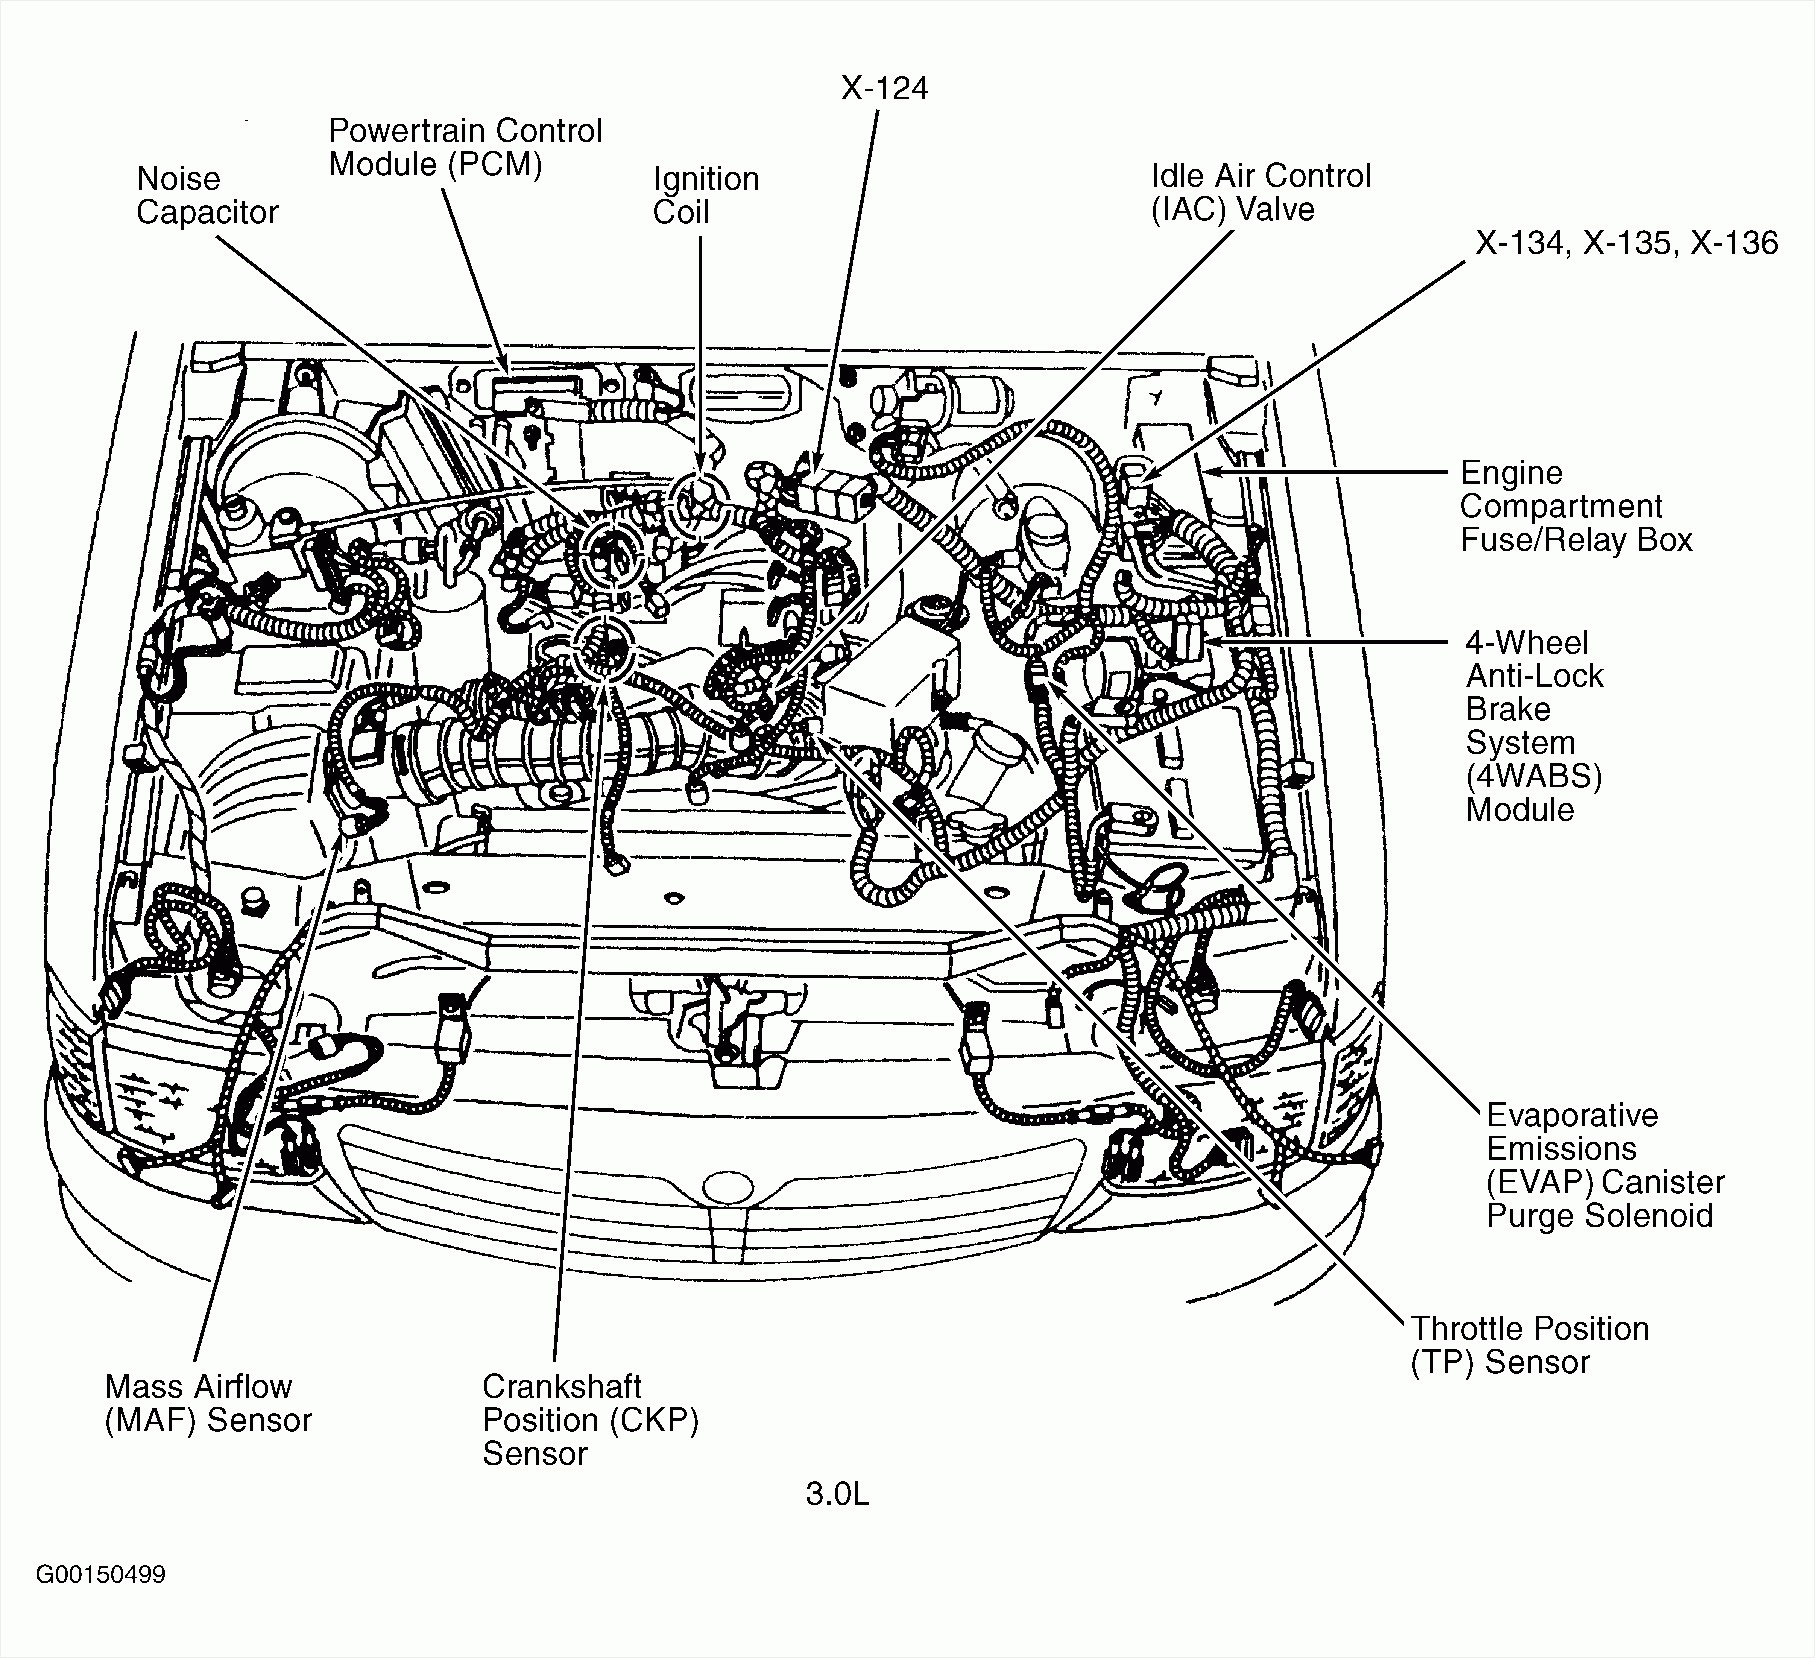 Kia Sedona Engine Diagram Wiring Diagrams For Mazda 3